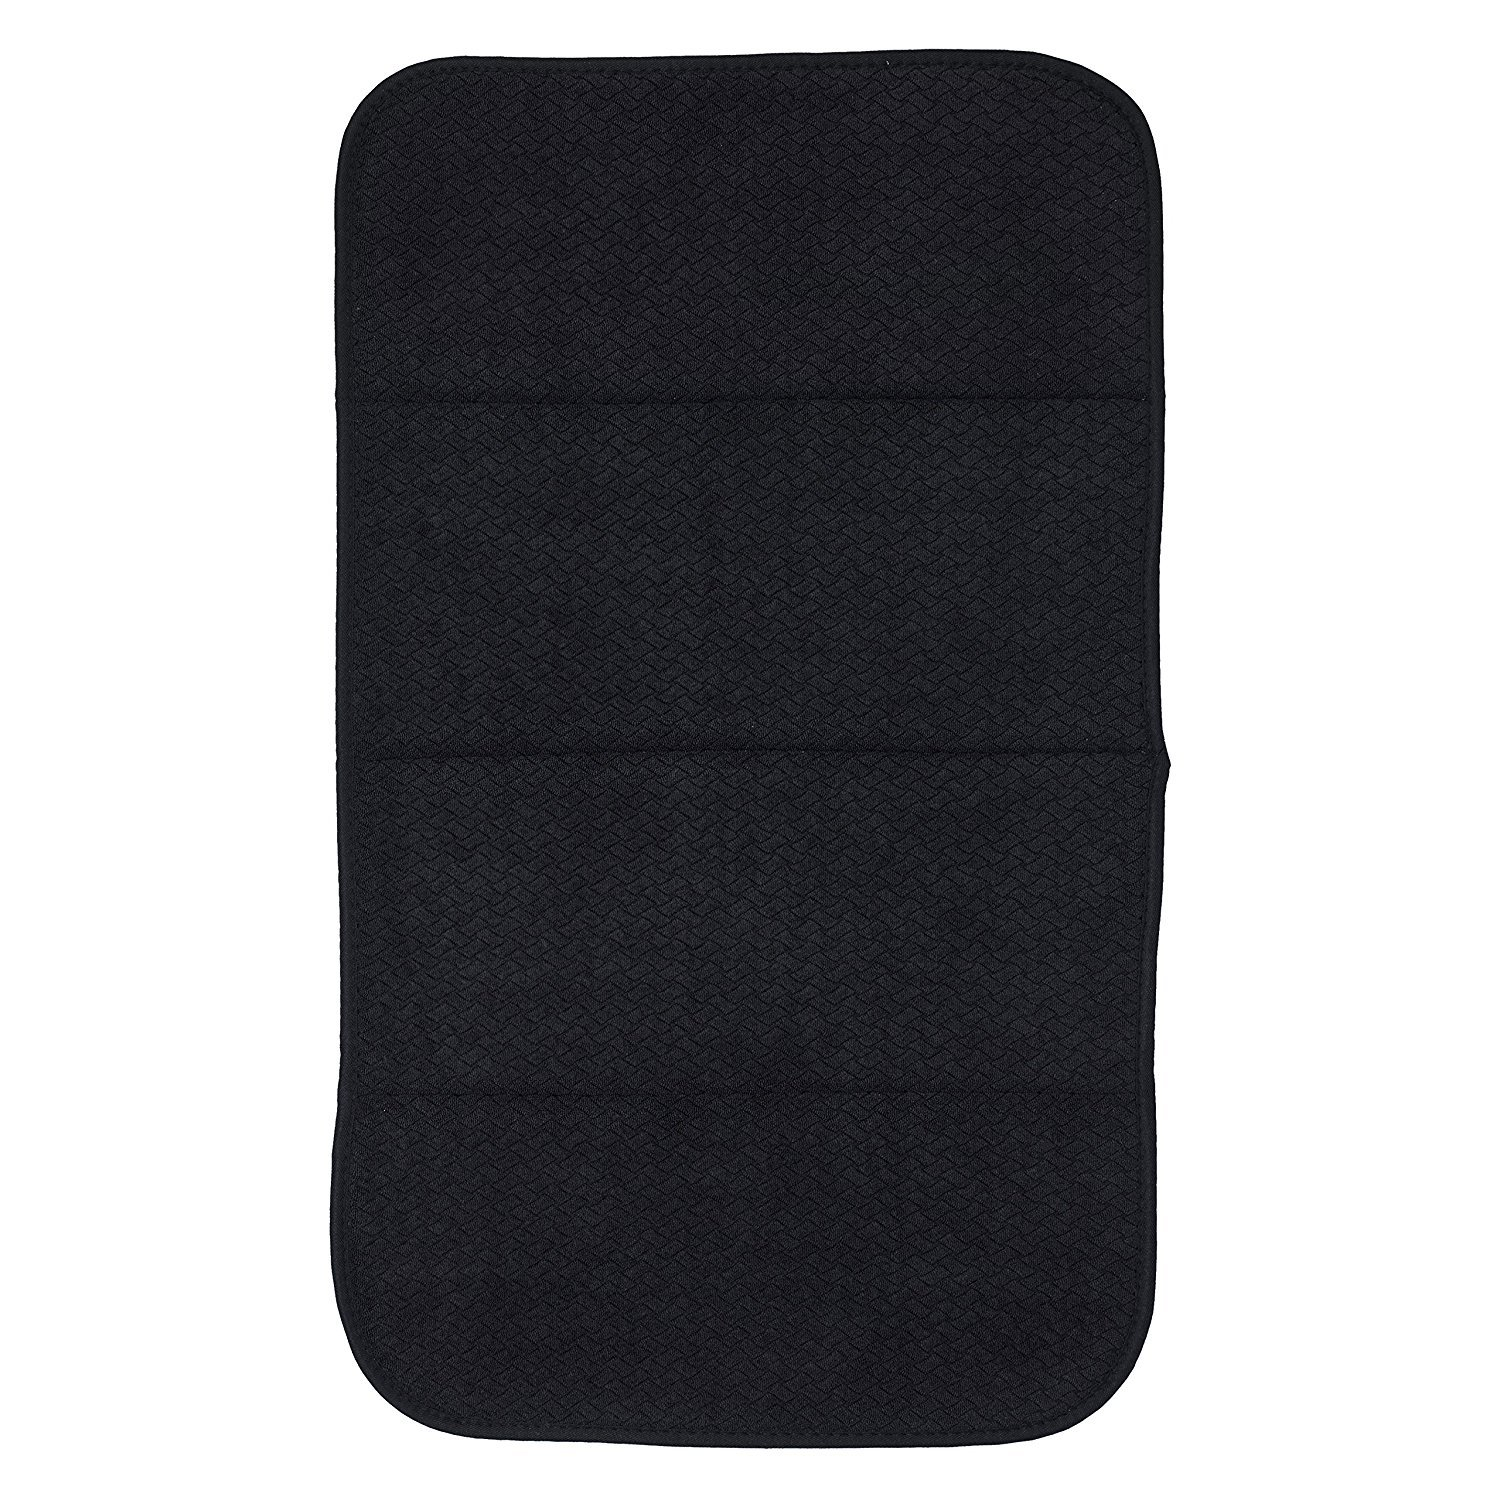 All Clad Textiles Reversible Fast-Drying Mat, 16-Inch x 28-Inch, Black